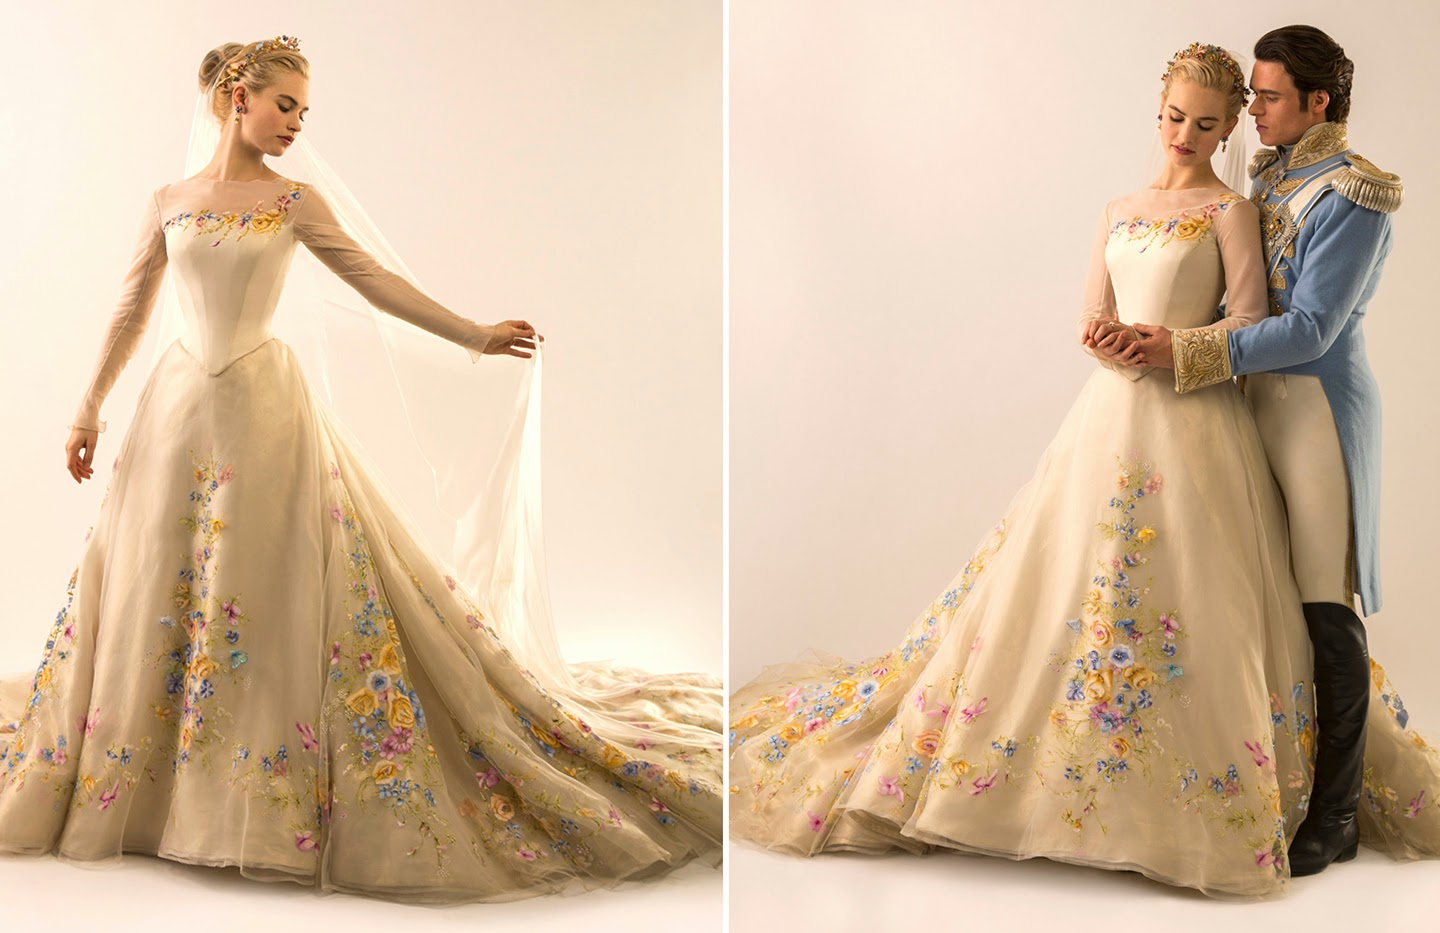 Surlalune fairy tales blog so i saw disney 39 s cinderella 2015 for Cinderella wedding dress up